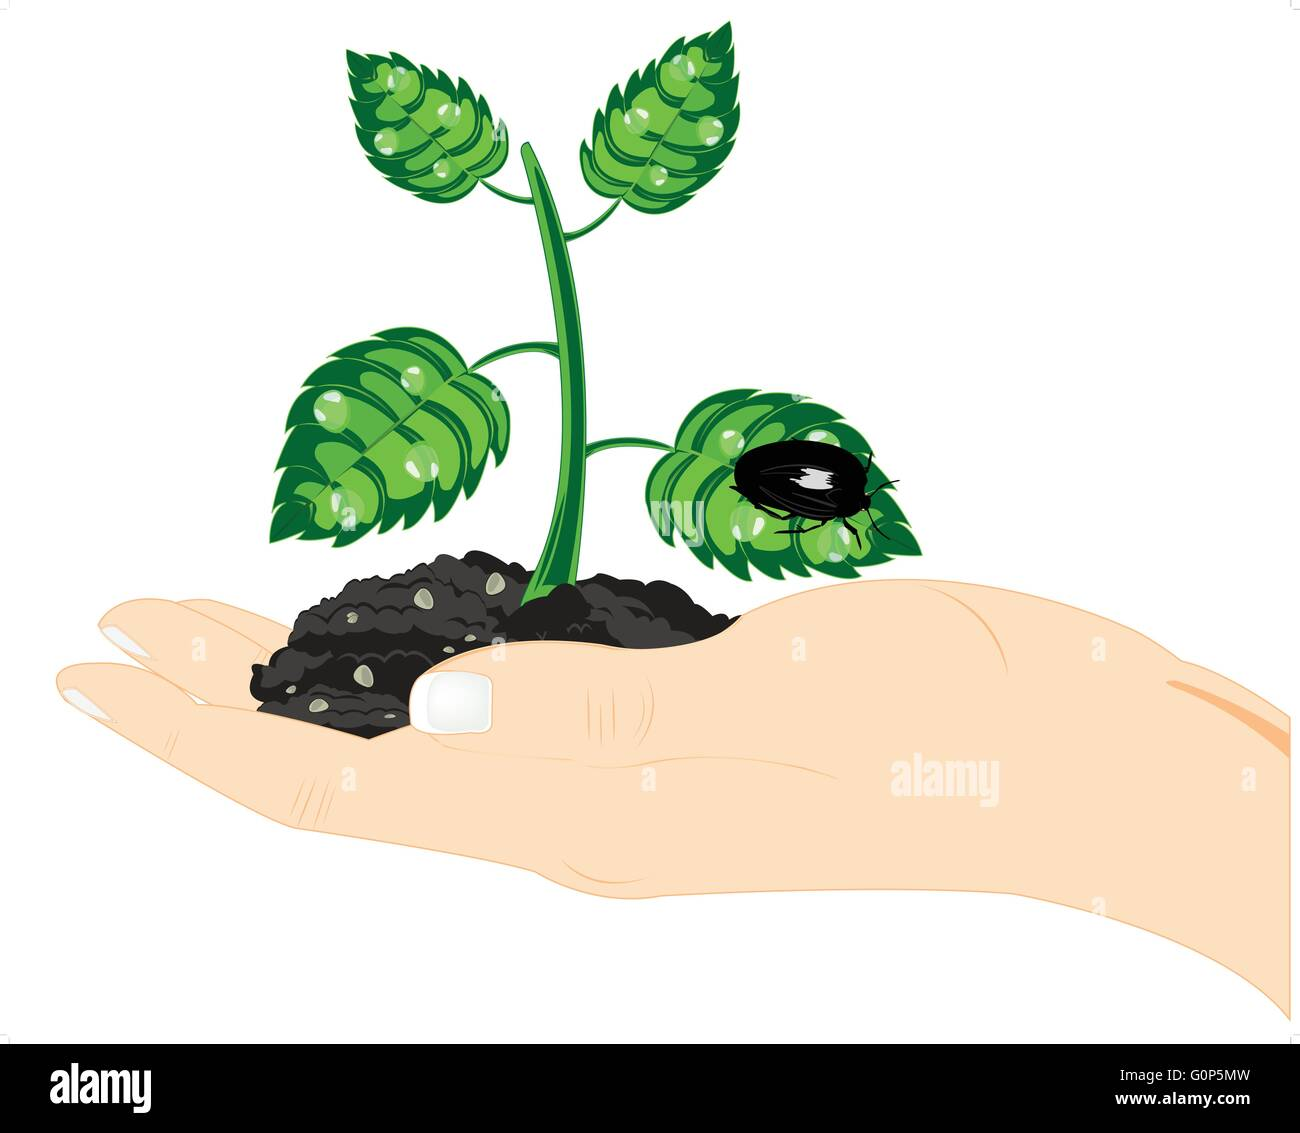 Seedling of the plant in hand on white background is insulated - Stock Vector